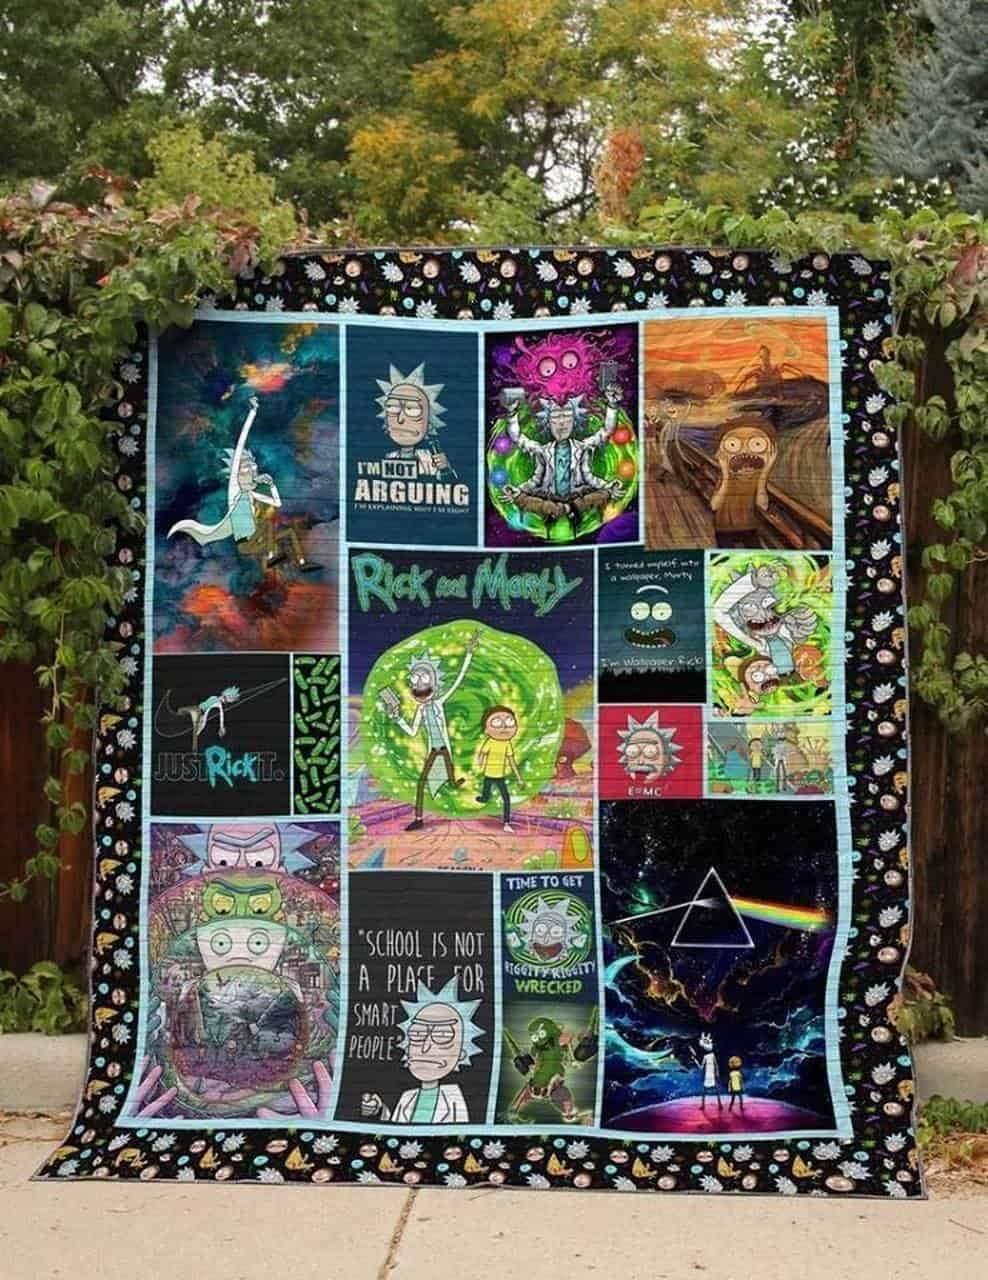 Rick and morty blanket - queen